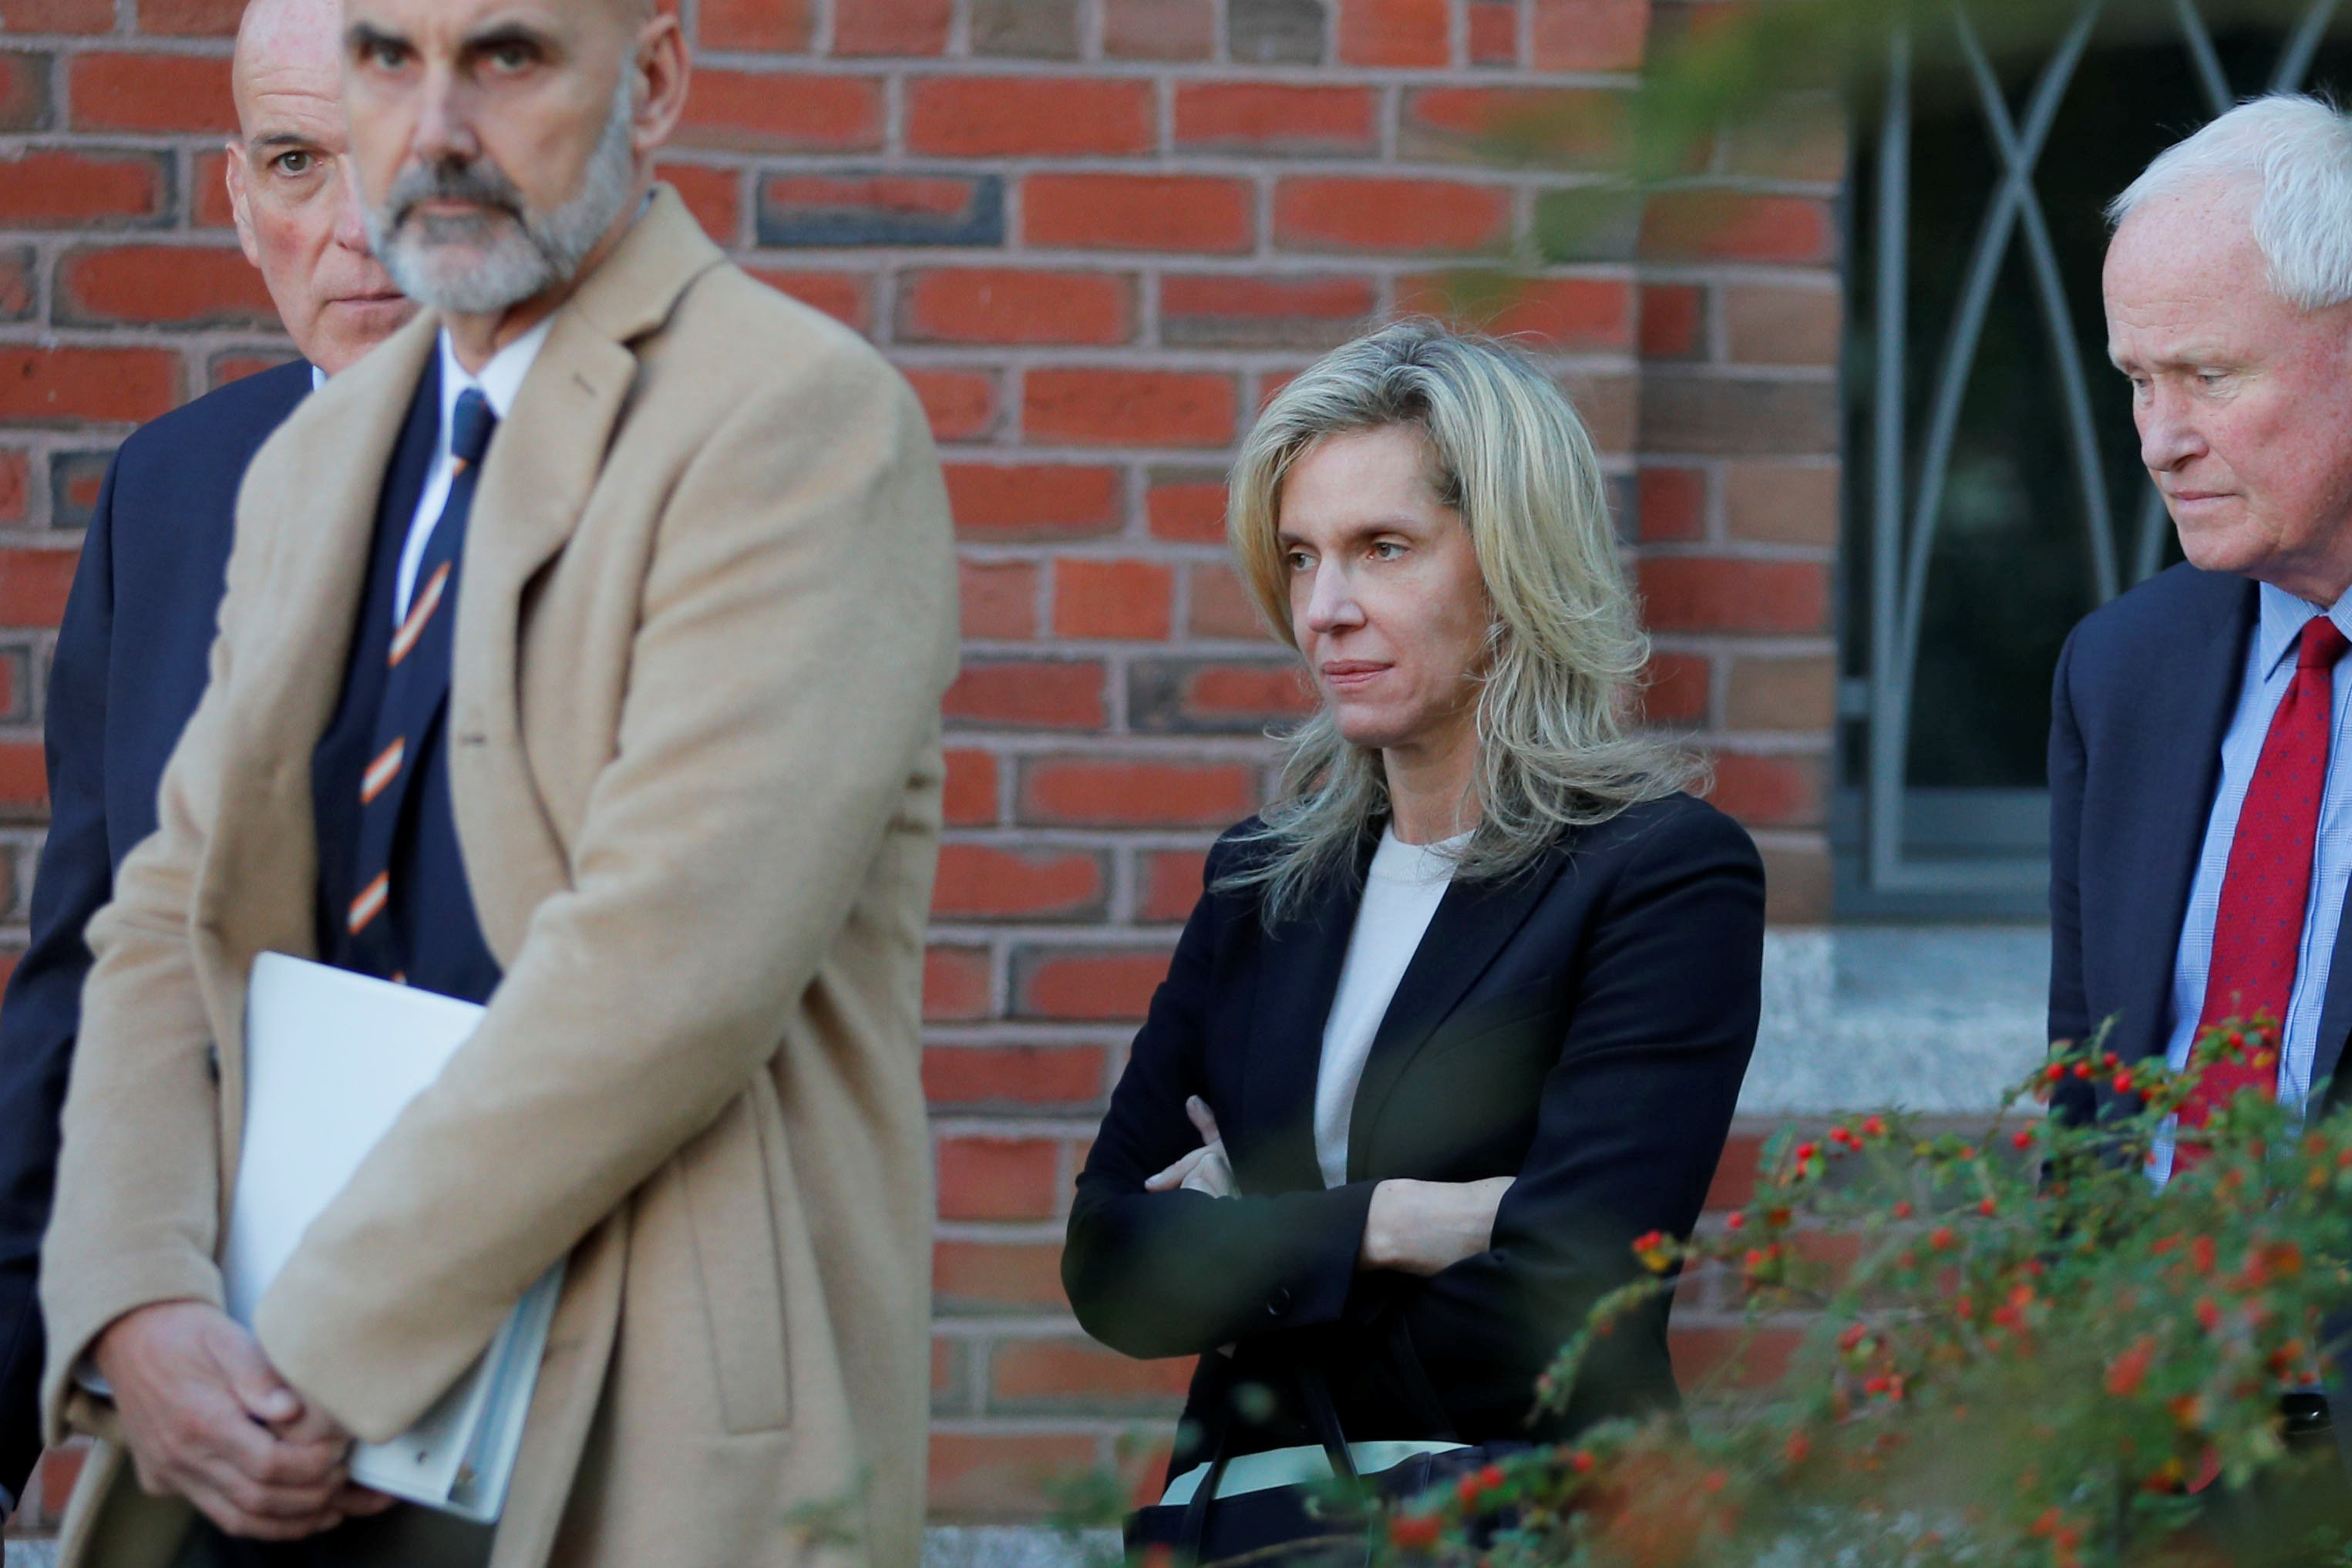 Author of parenting book sentenced to three weeks in prison for college admissions scam